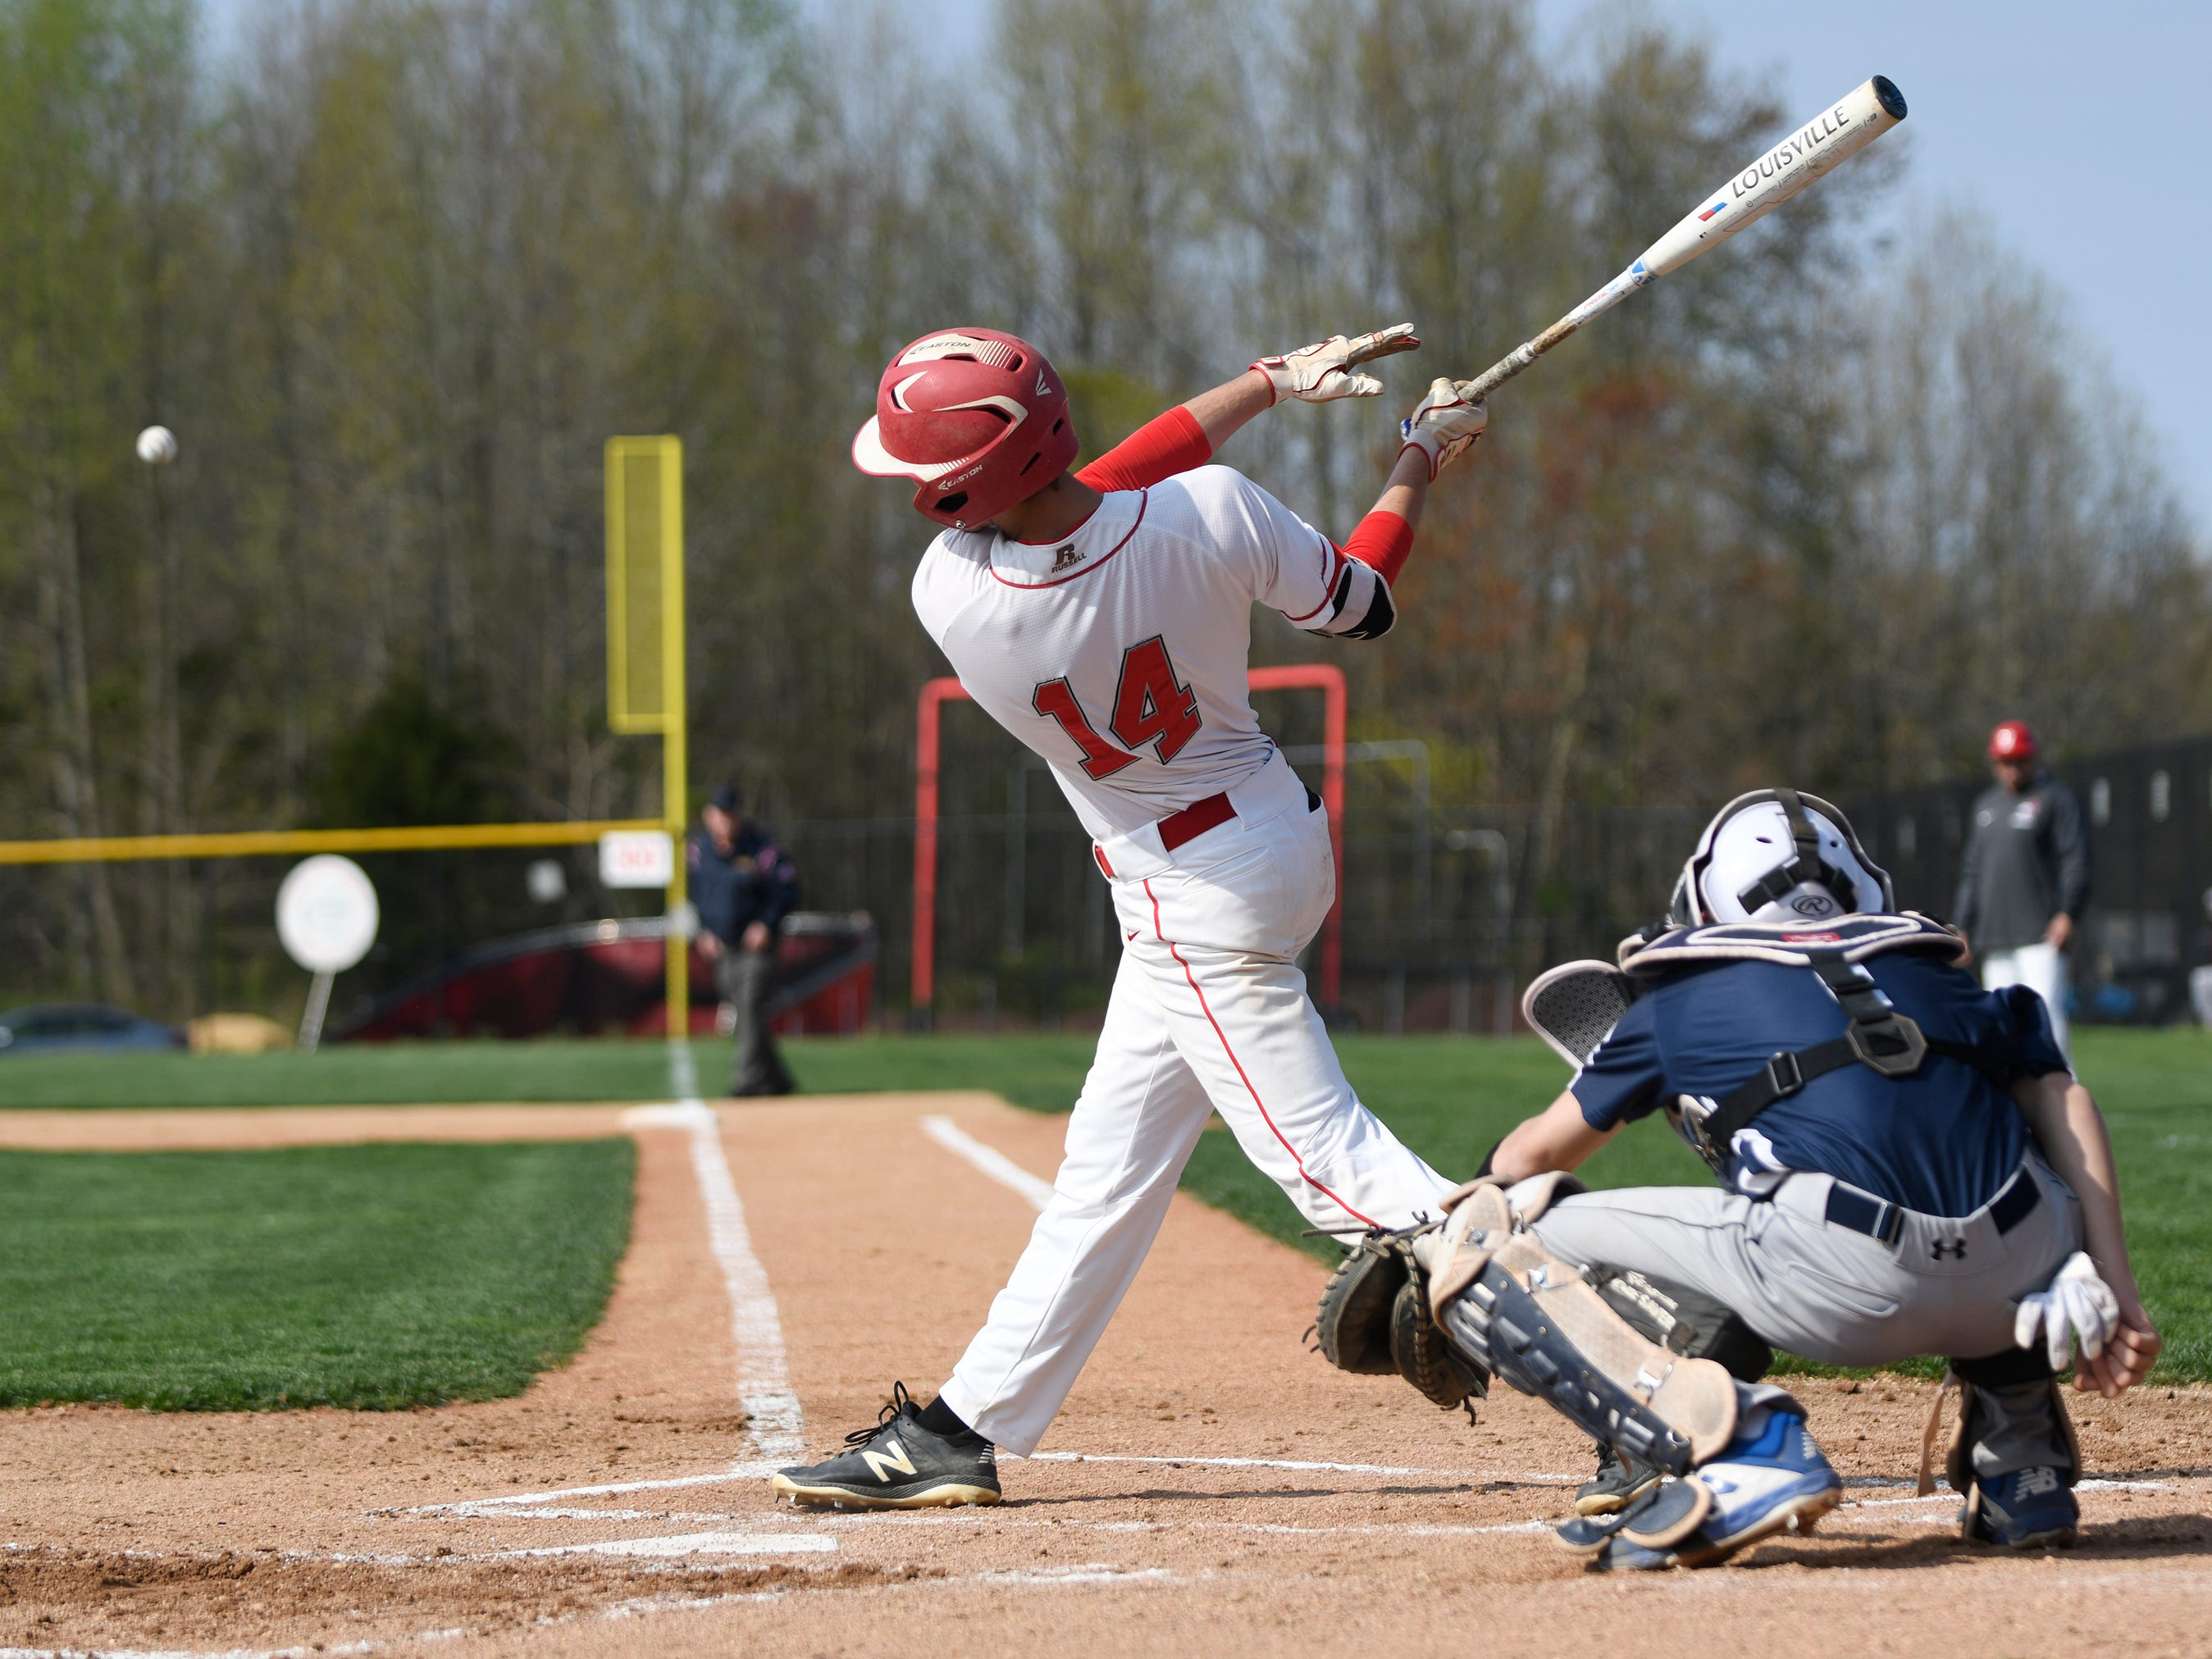 Vineland's David Hunsberger at bat in a game against visiting Atlantic City on Wednesday. The Fighting Clan topped the Vikings 12-2.